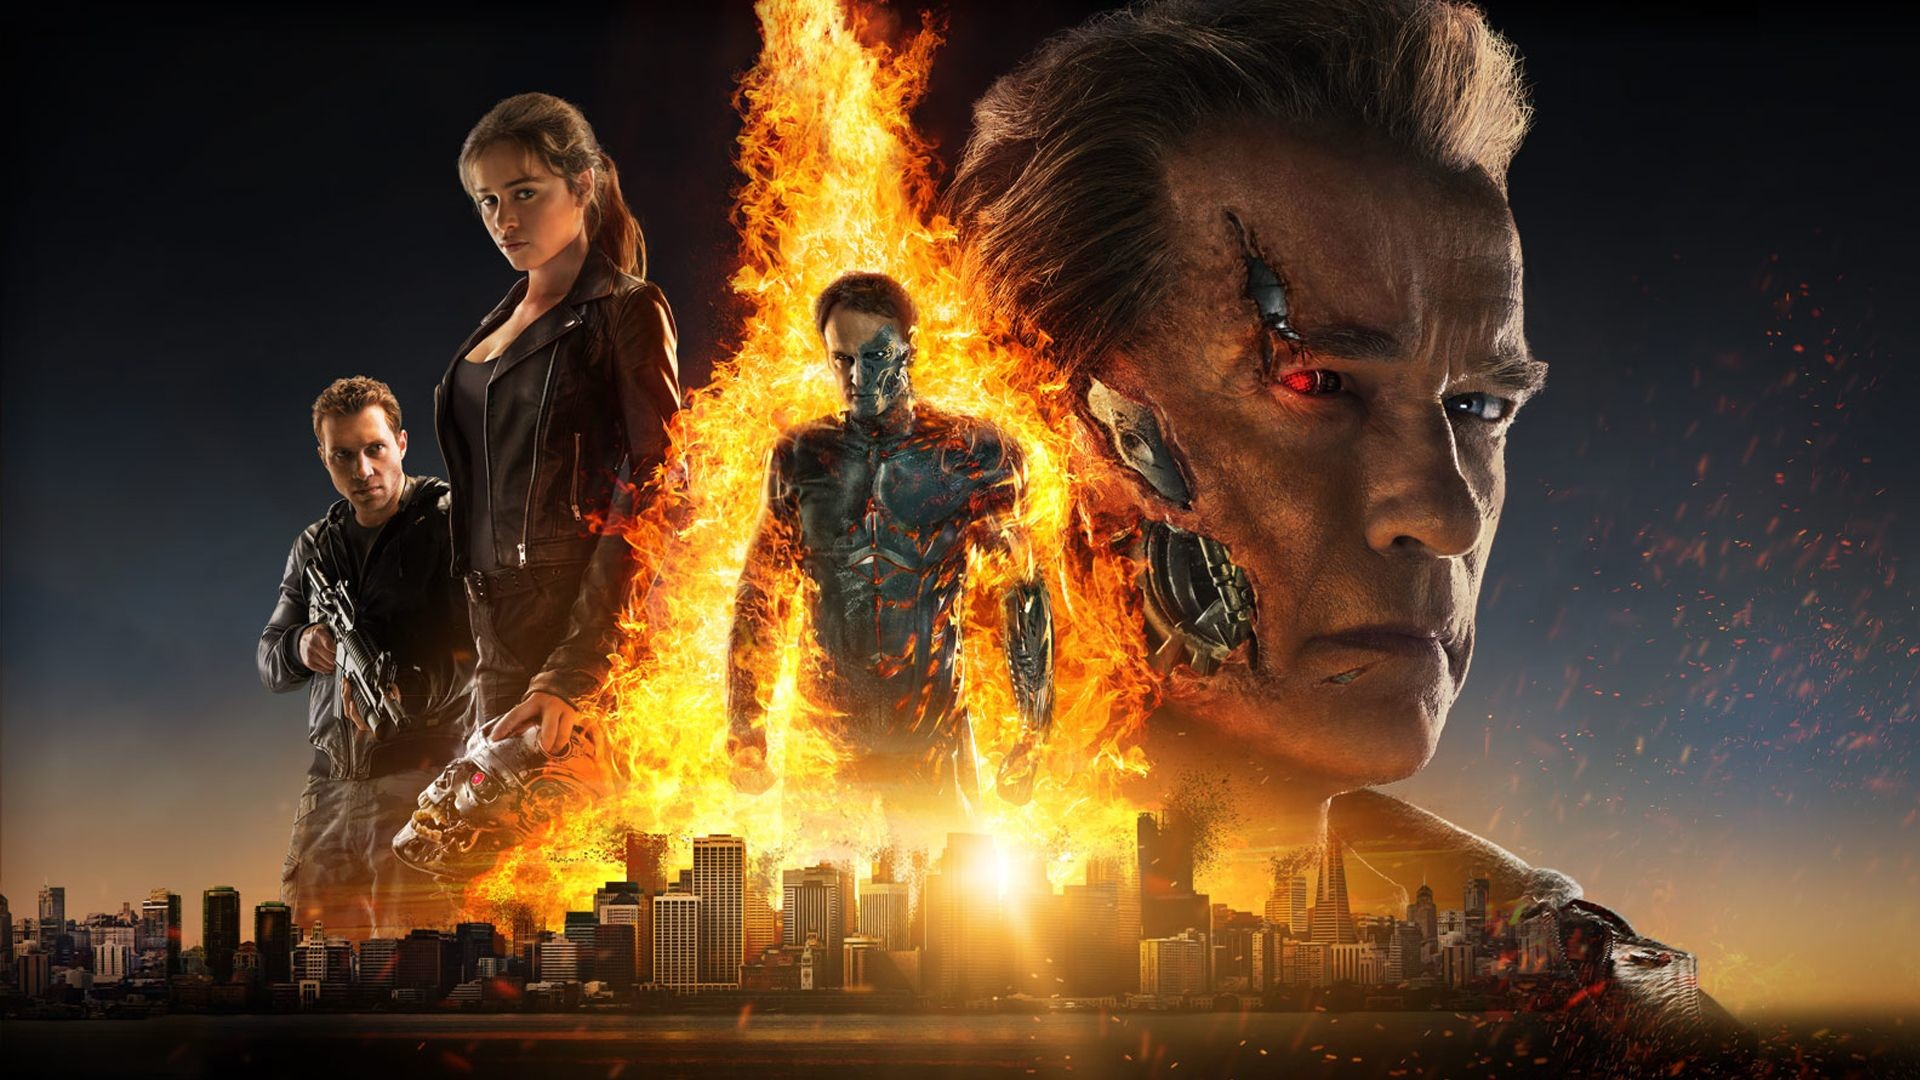 1920x1080 Terminator Genisys Wallpapers Terminator Genisys High Quality